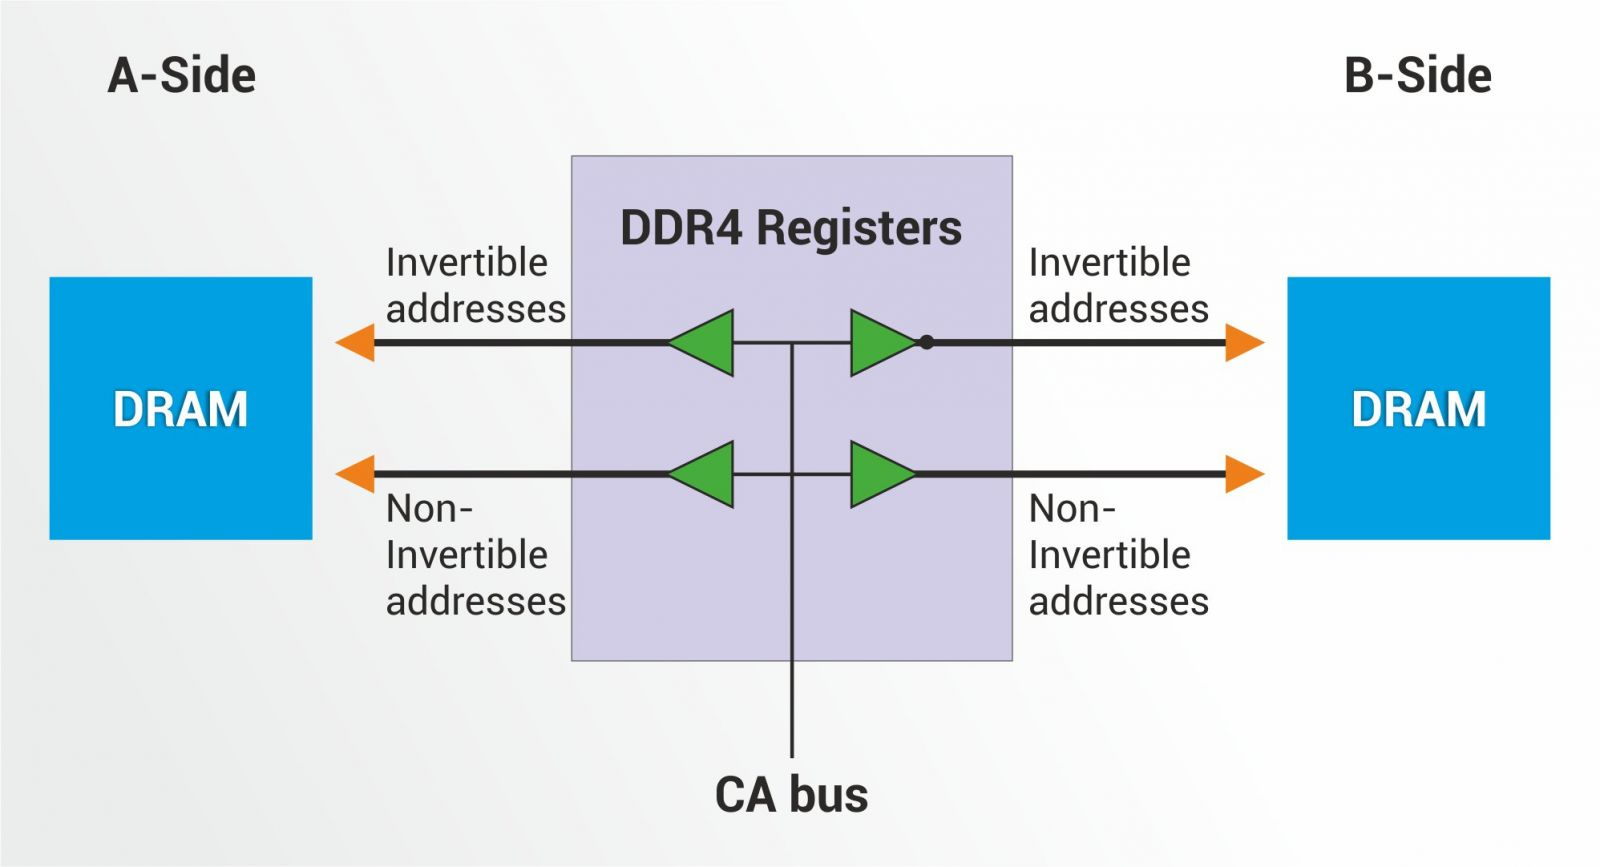 ddr 4 registers